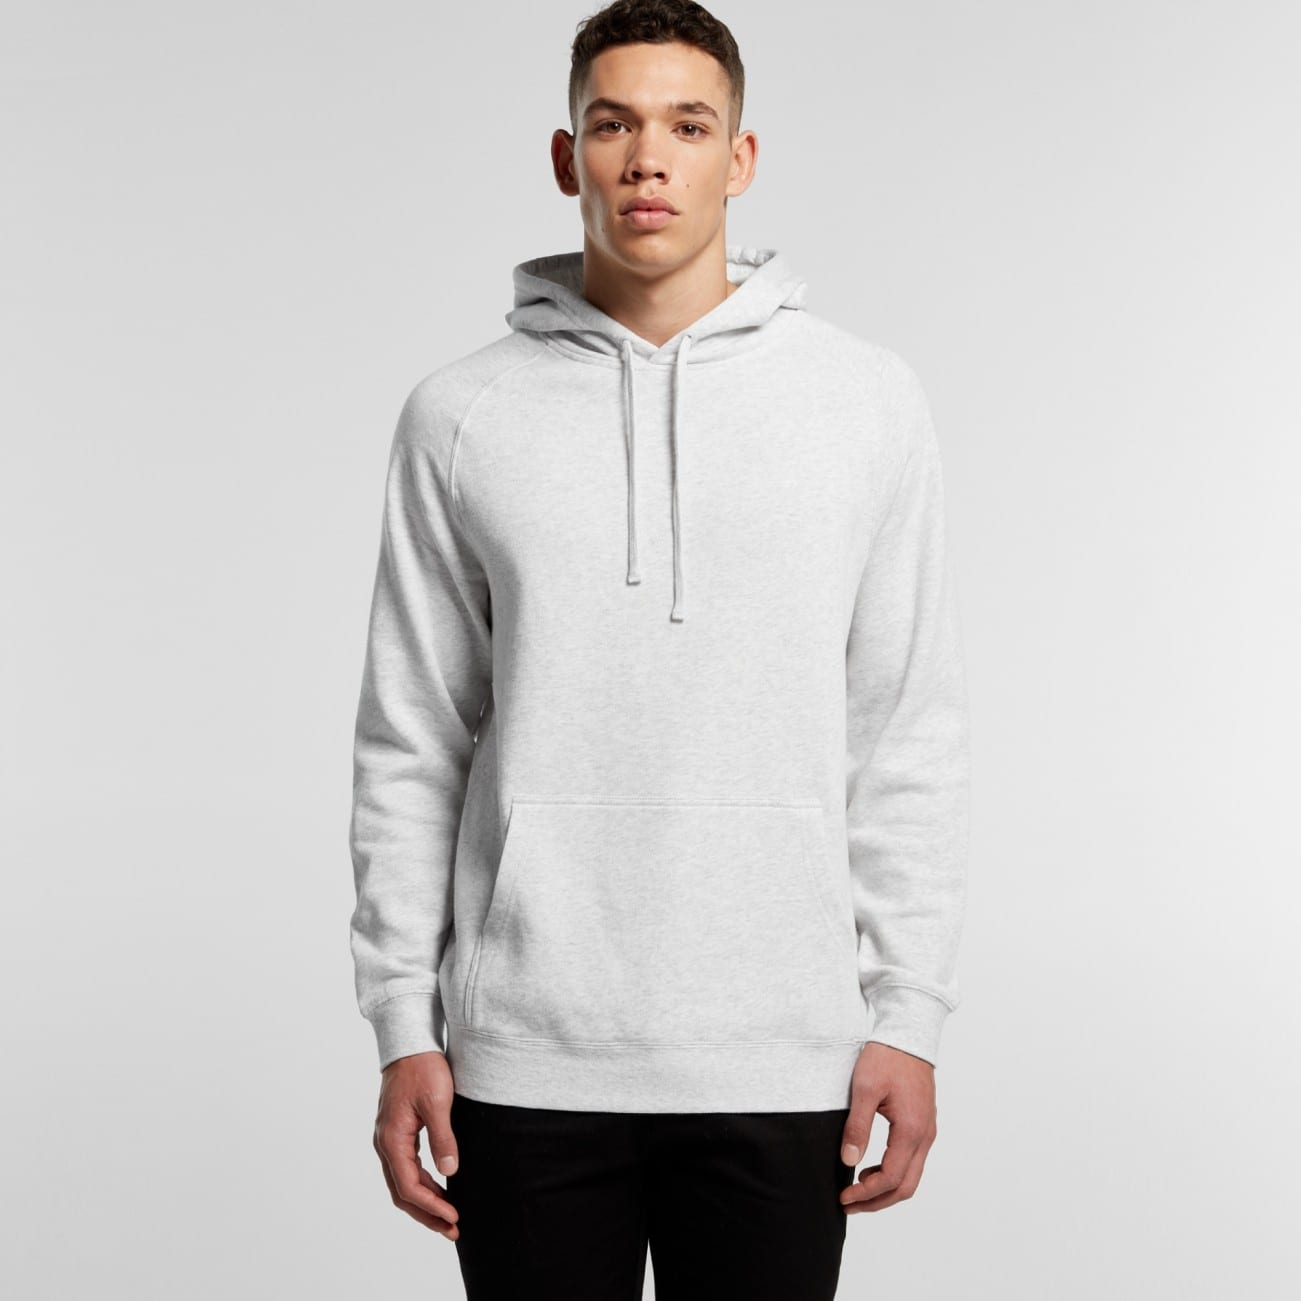 AS 5101 Men's Supply Hood